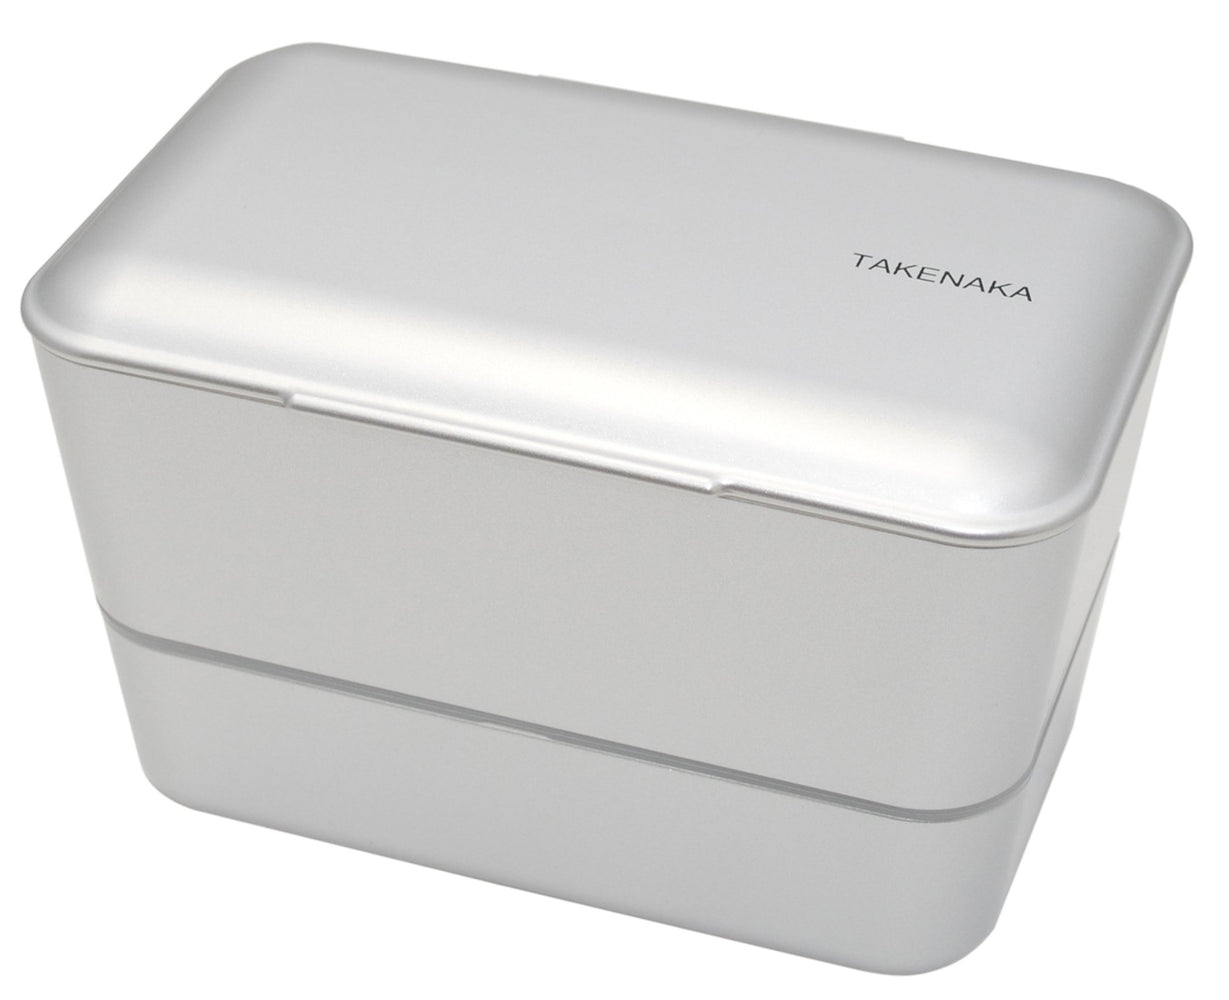 Expanded Double Bento Box | Silver by Takenaka - Bento&con the Bento Boxes specialist from Kyoto